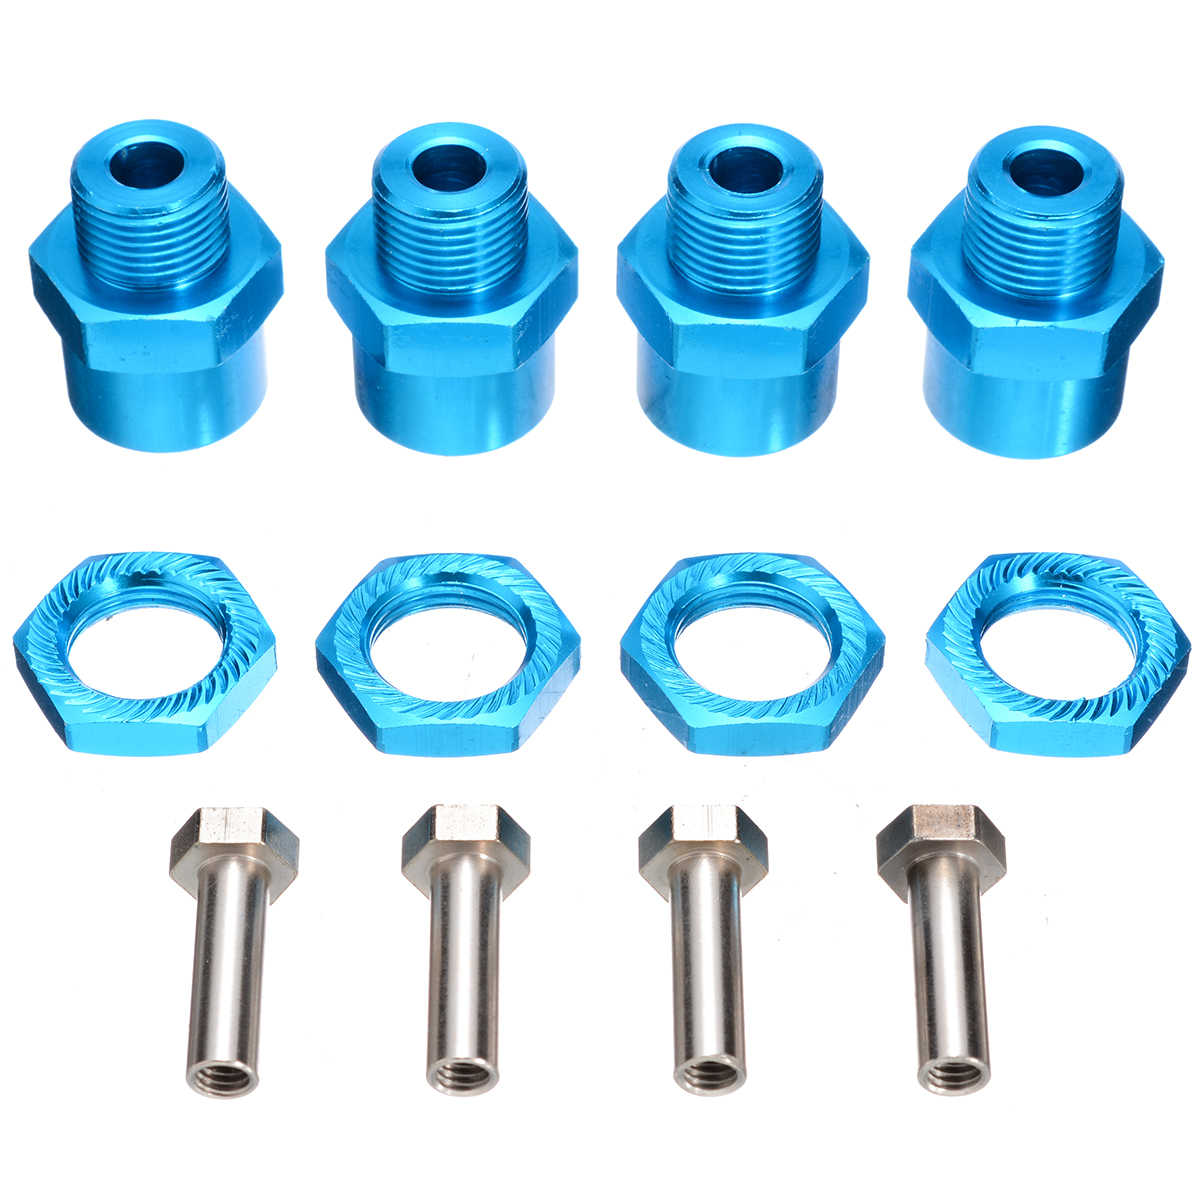 Yongfer RC Extension Wheel 12Pcs 1//10 to 1//8 RC Model Car Part Aluminum Alloy 12mm to 17mm Wheel Hub Adapter Coupling